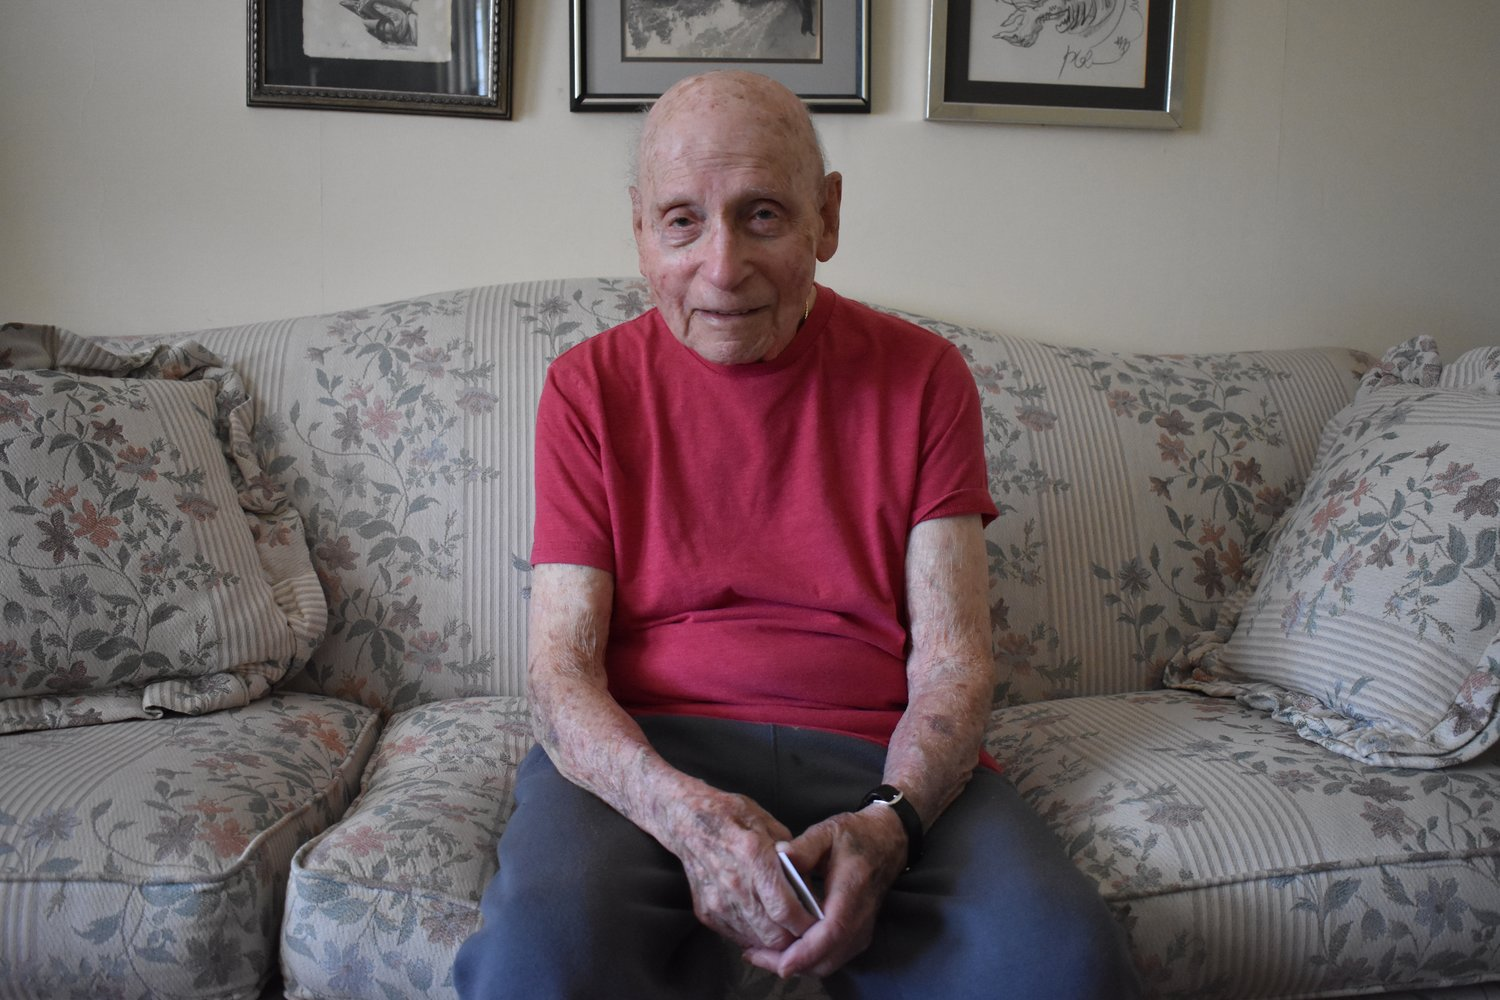 Rockville Centre resident Herbert Rosenberg, 97, served overseas in the U.S. Army Air Corps during World War II and spent more than a year as a prisoner of war.